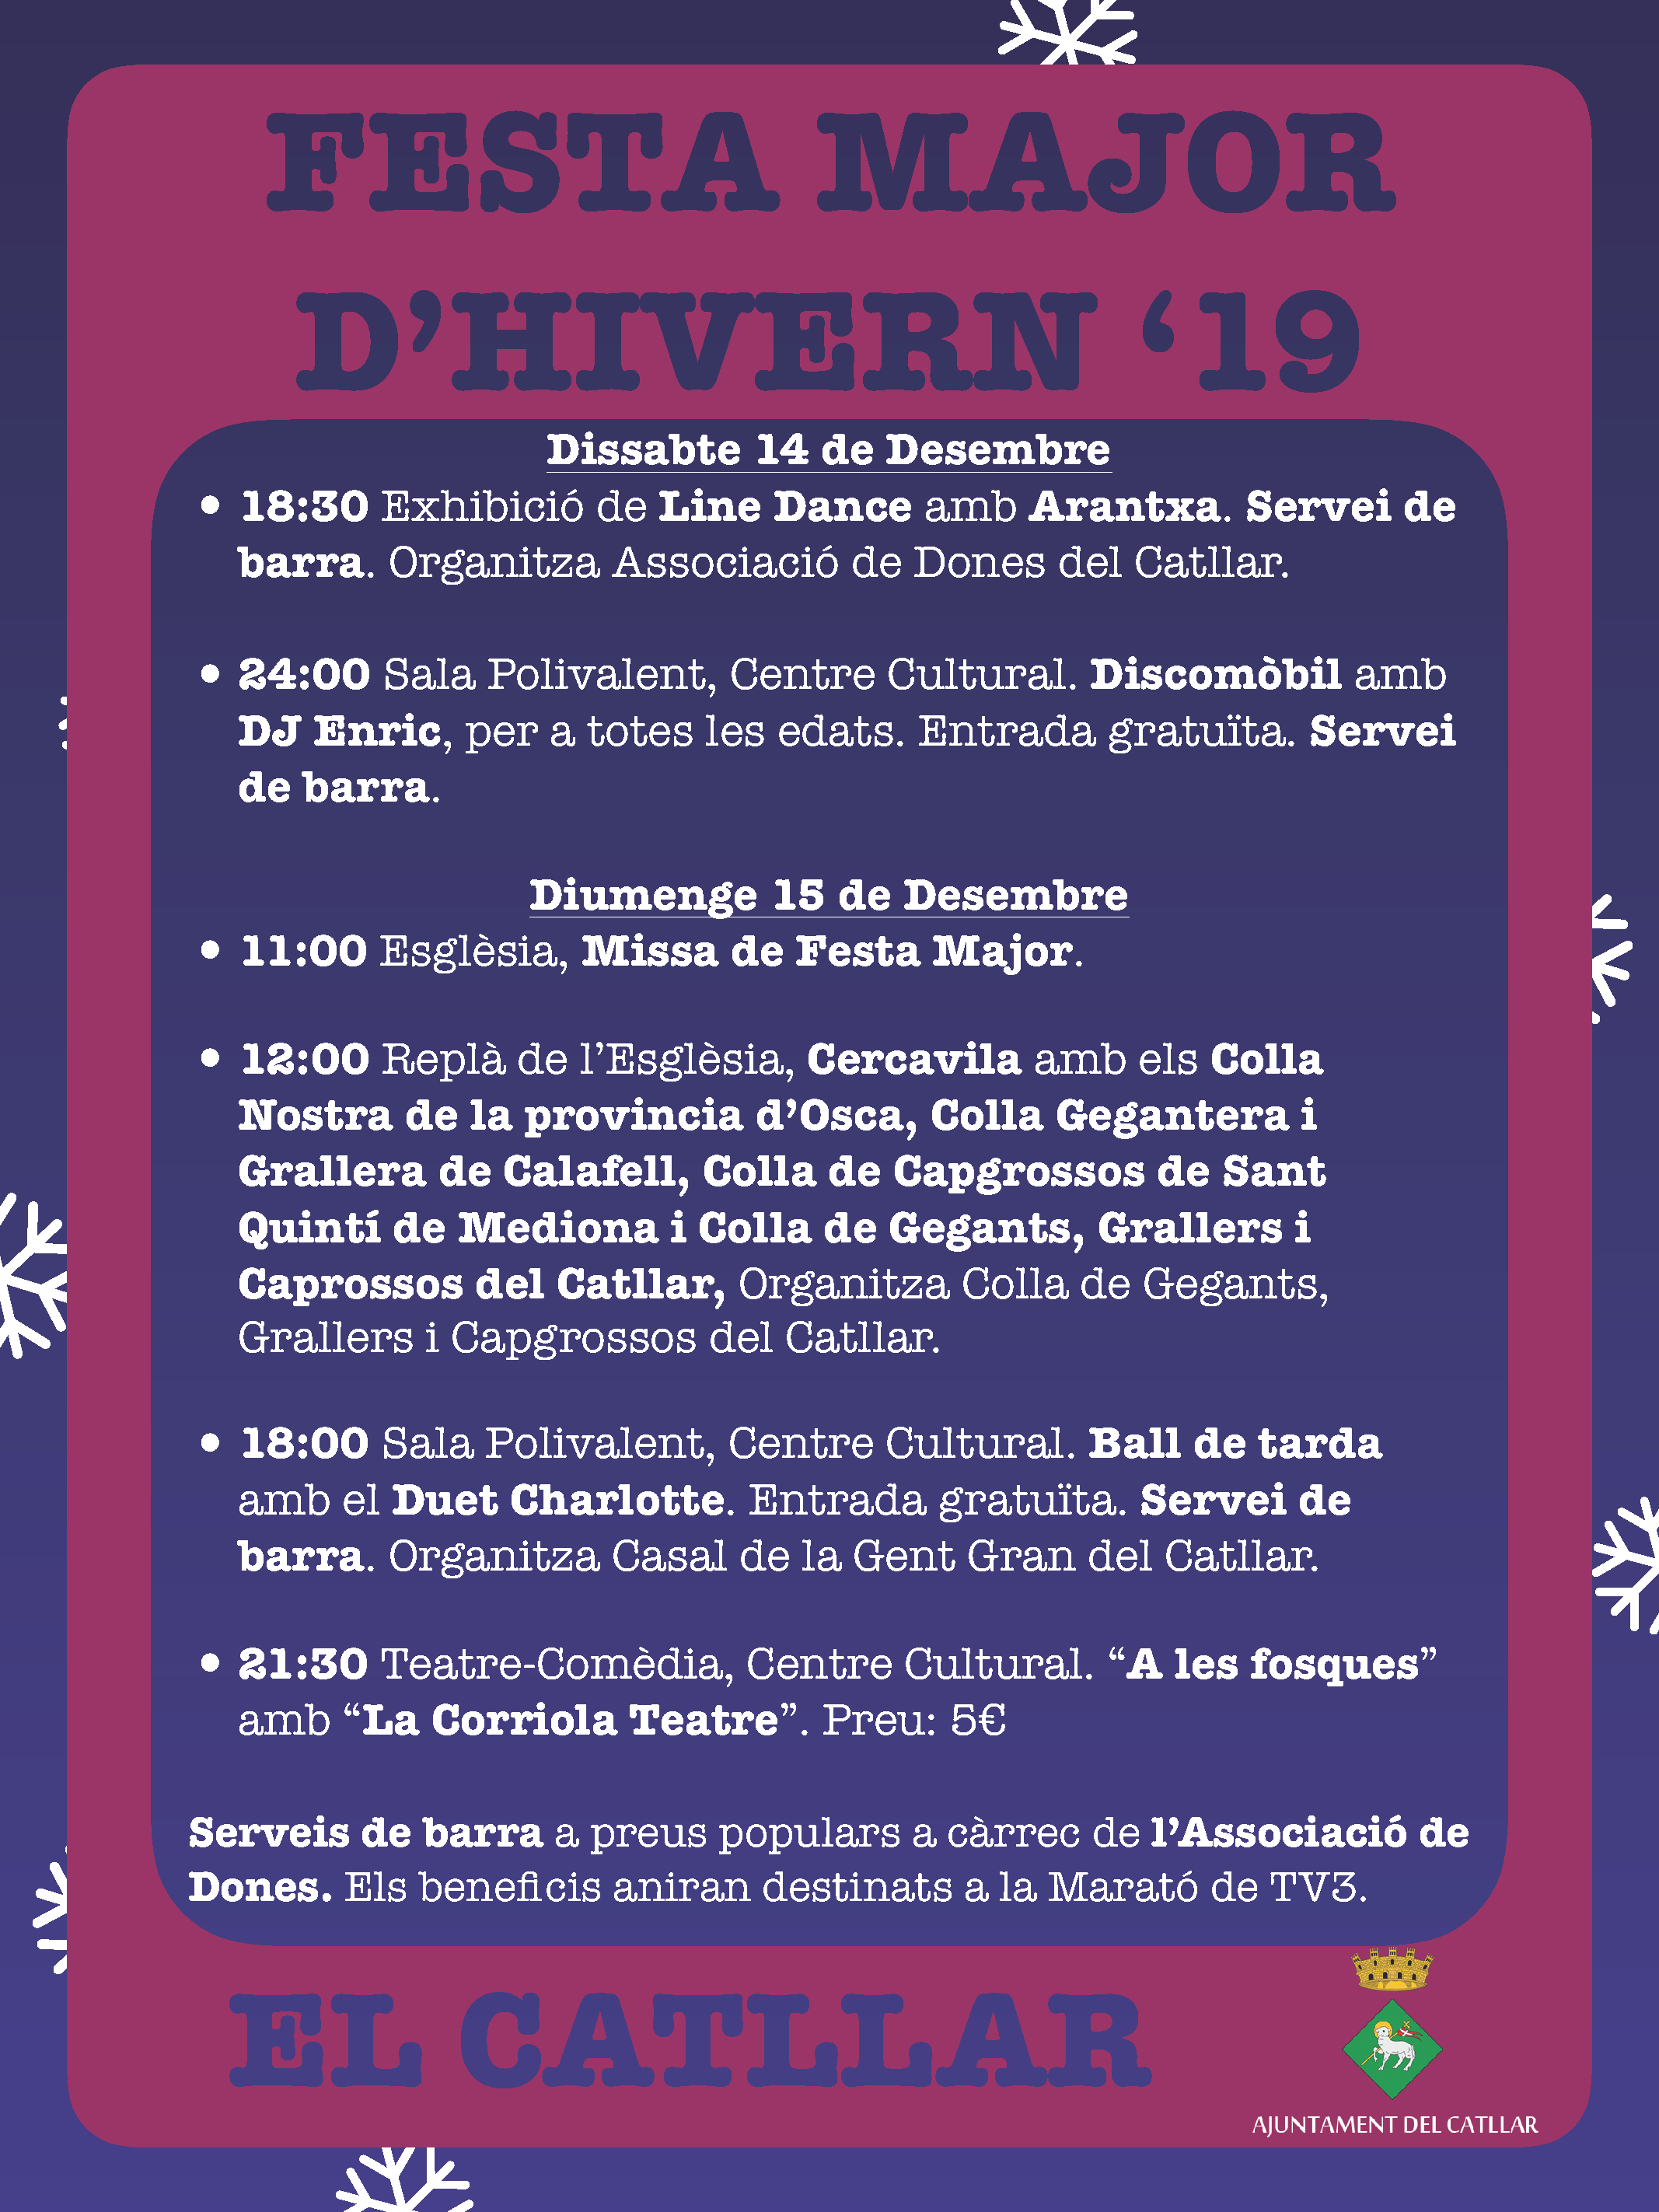 FESTA MAJOR D'HIVERN '19